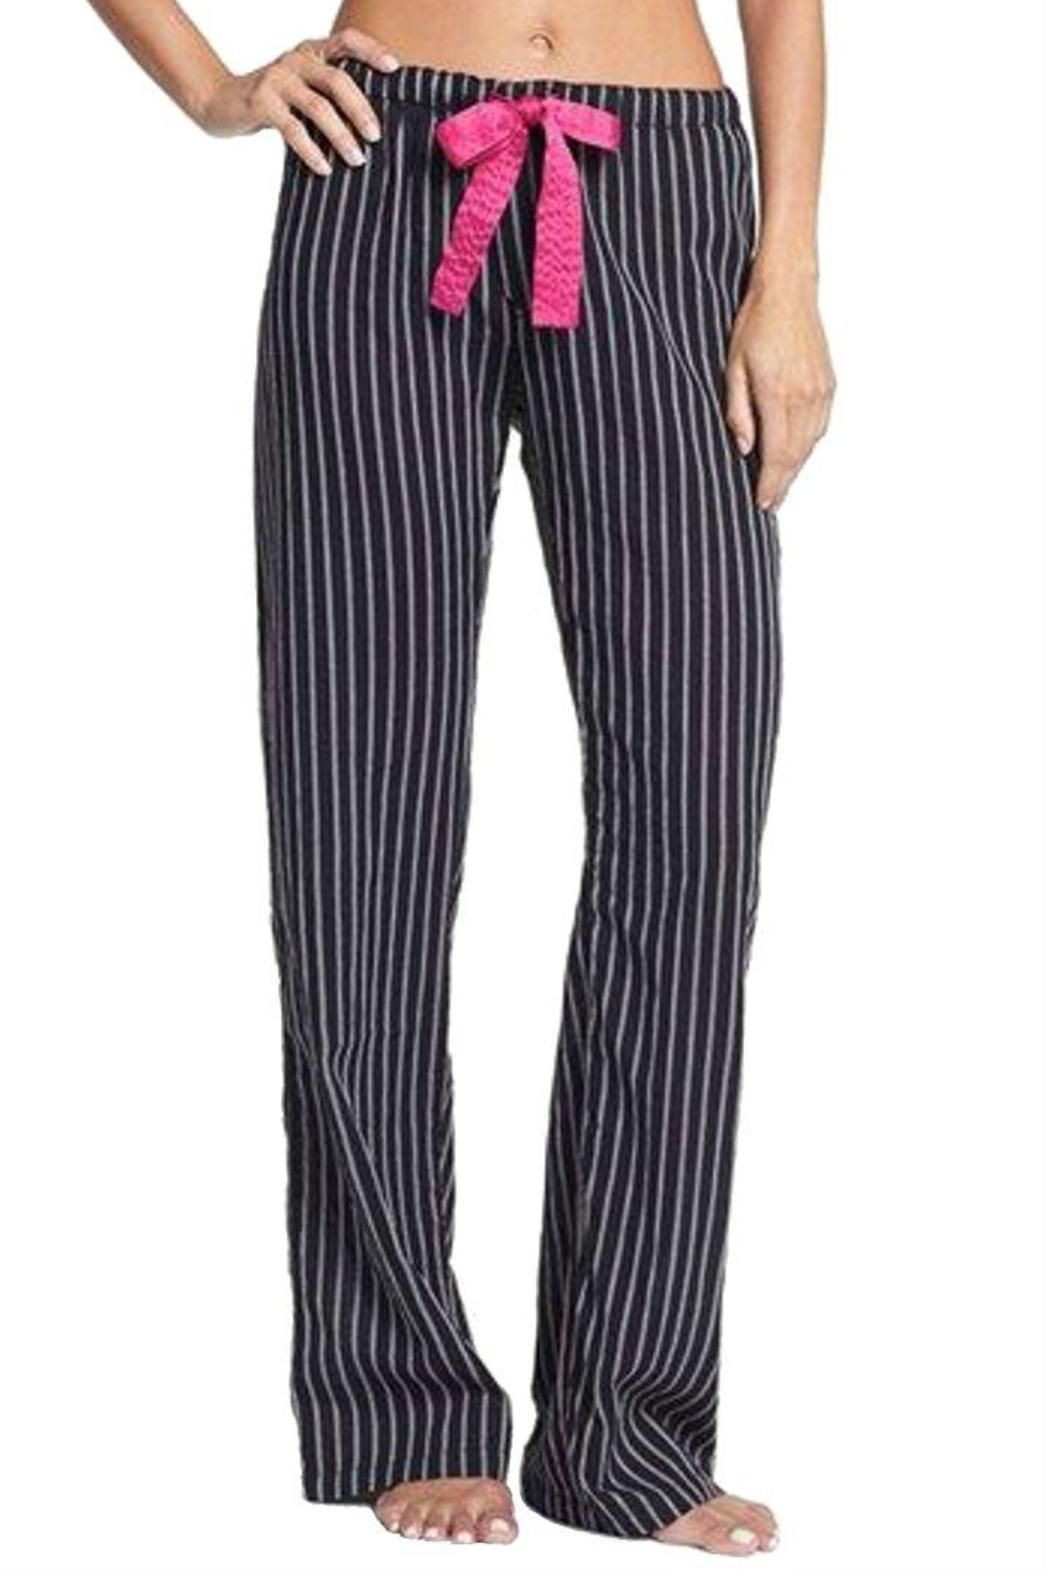 """Black pajama or lounge bottoms with a grey and pink thin stripe and a pink satin drawstring tie so you can adjust the fit. The pop of pink adds the perfect feminine touch, and a hidden 3-button fly is added fun. Lightweight, premium quality cotton gets even better with age.    Measures: 9"""" rise; 32"""" inseam   Black Striped Bottoms by The Dressing Room. Clothing - Lingerie & Sleepwear - Sleepwear California"""